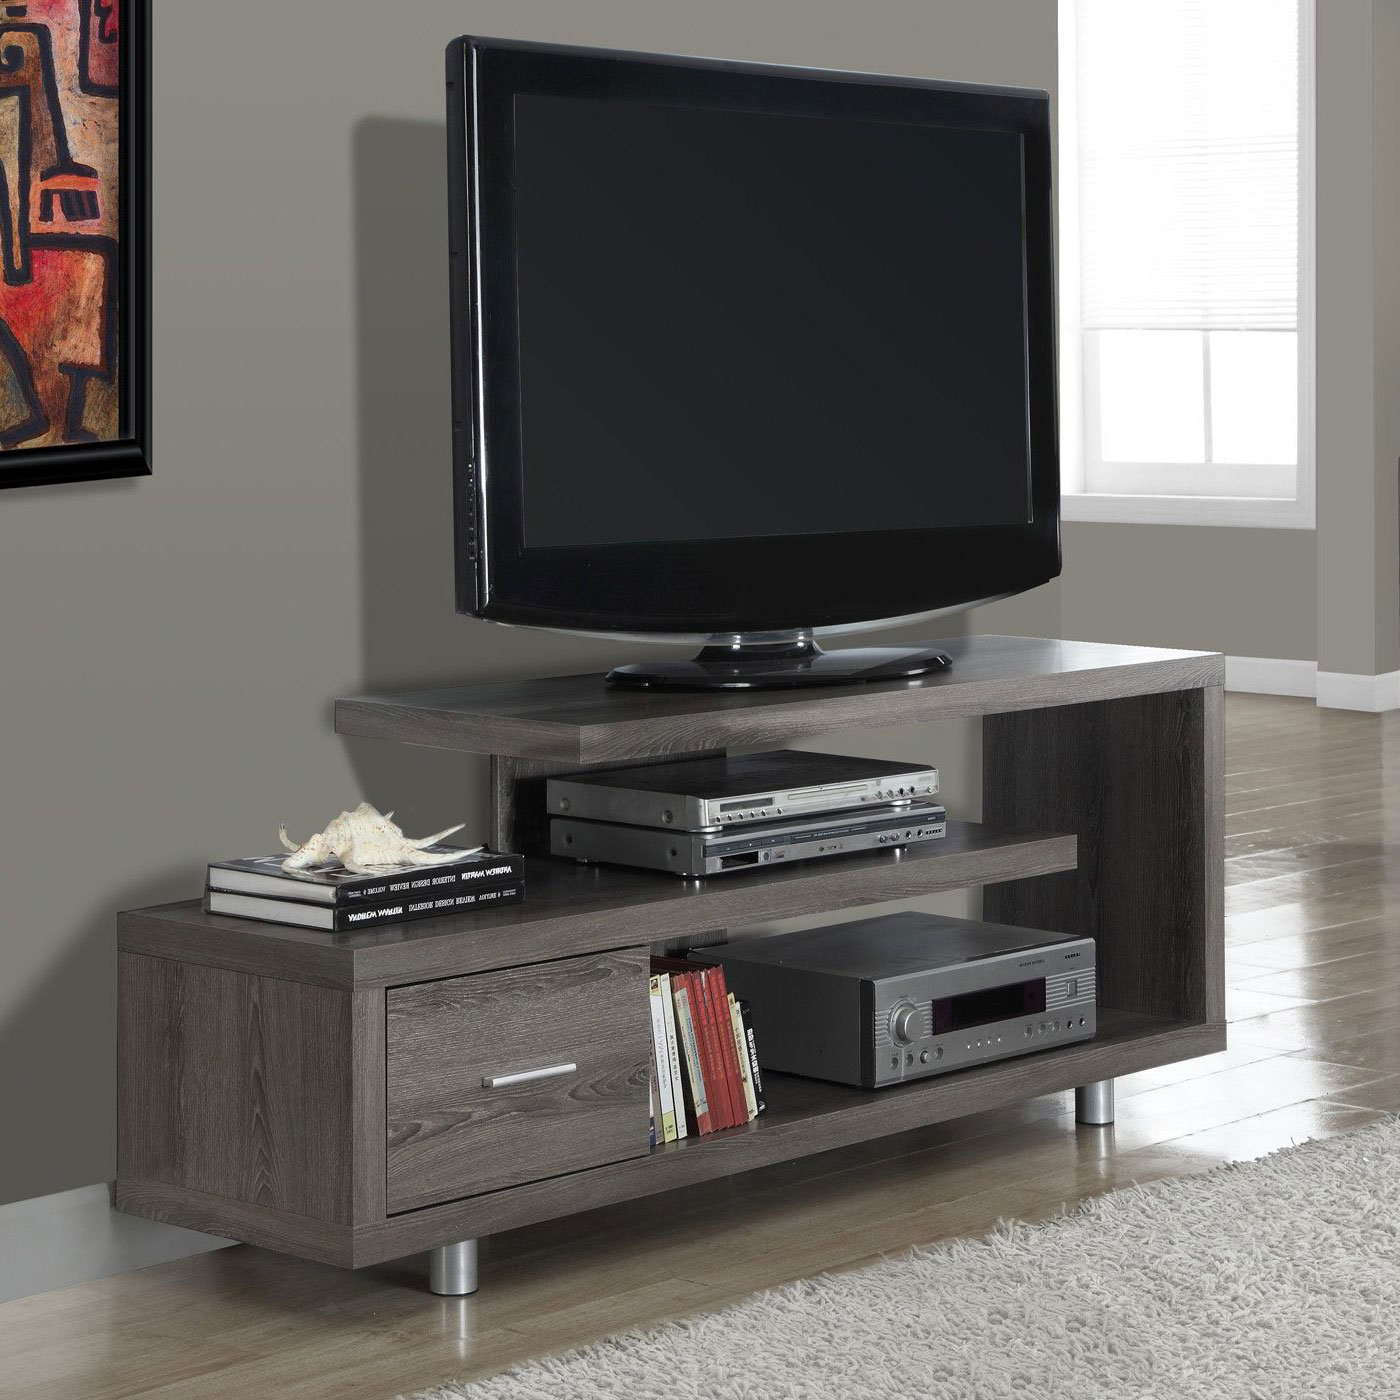 "Maddy 60 Inch Tv Stands For Recent Monarch Tv Stand White With 1 Drawer For Tvs Up To 47""l – Walmart (View 12 of 20)"